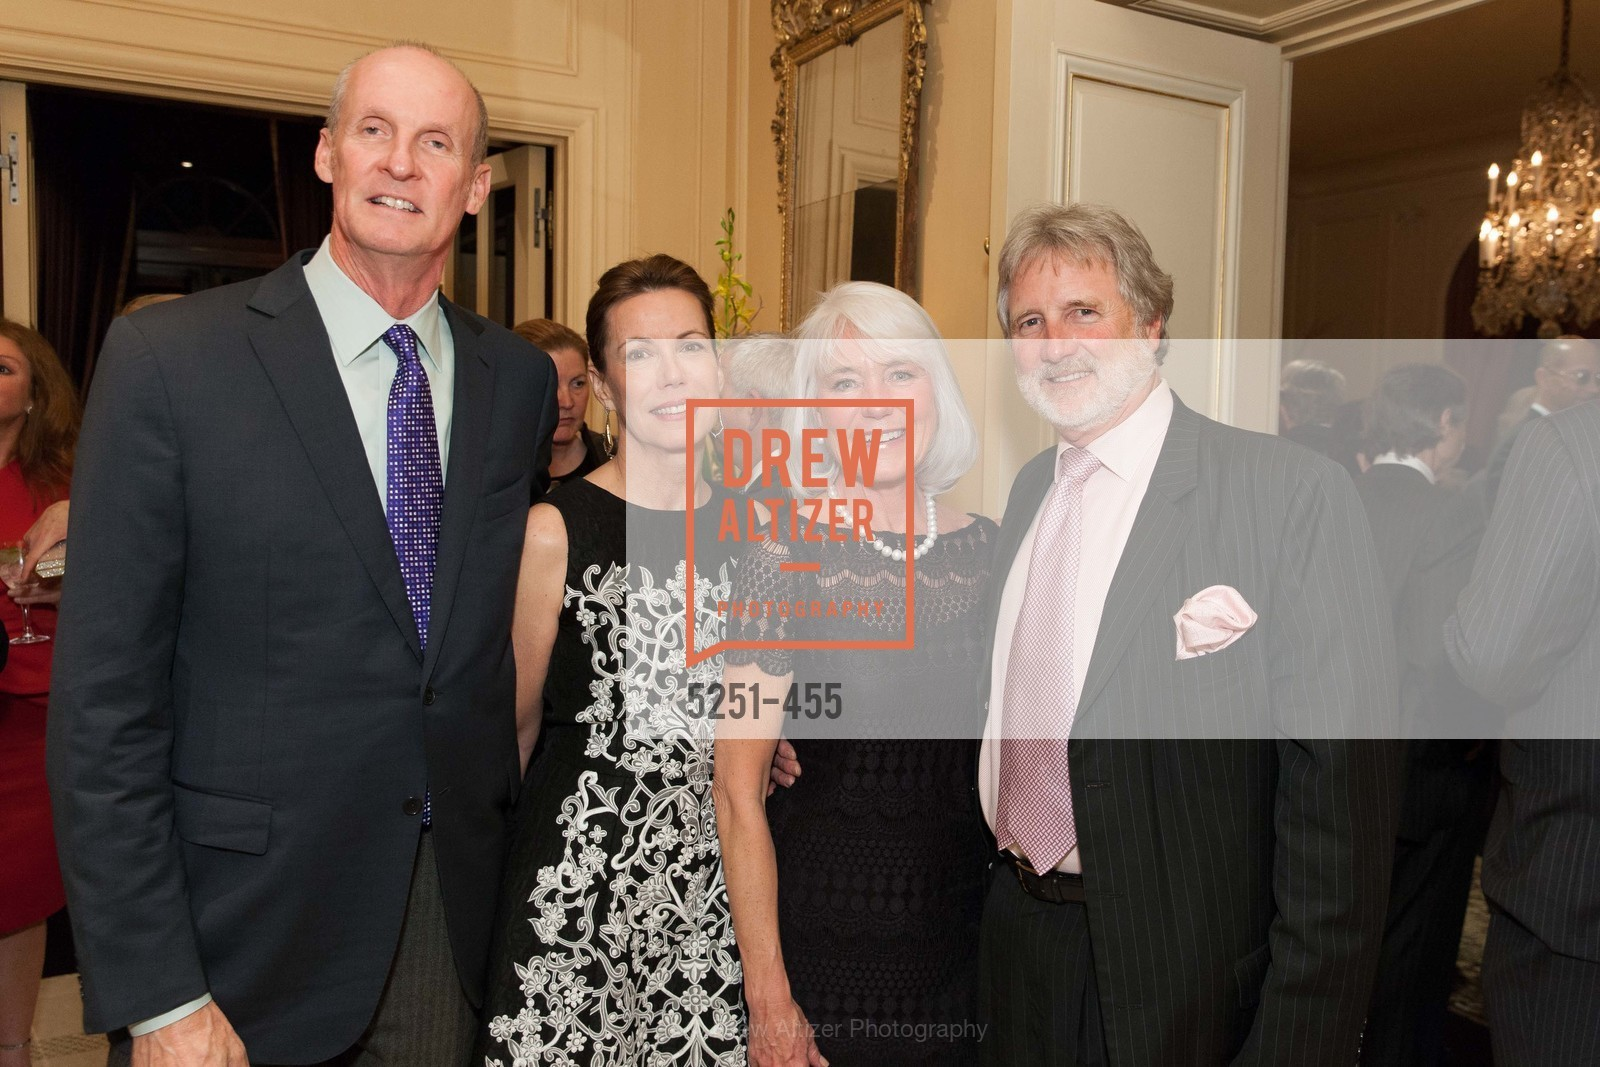 John Powers, Millicent Powers, Kelli Burrill, Steve Burrill, SAN FRANCISCO BALLET Grand Benefactors Reception, US. US, January 8th, 2014,Drew Altizer, Drew Altizer Photography, full-service event agency, private events, San Francisco photographer, photographer California